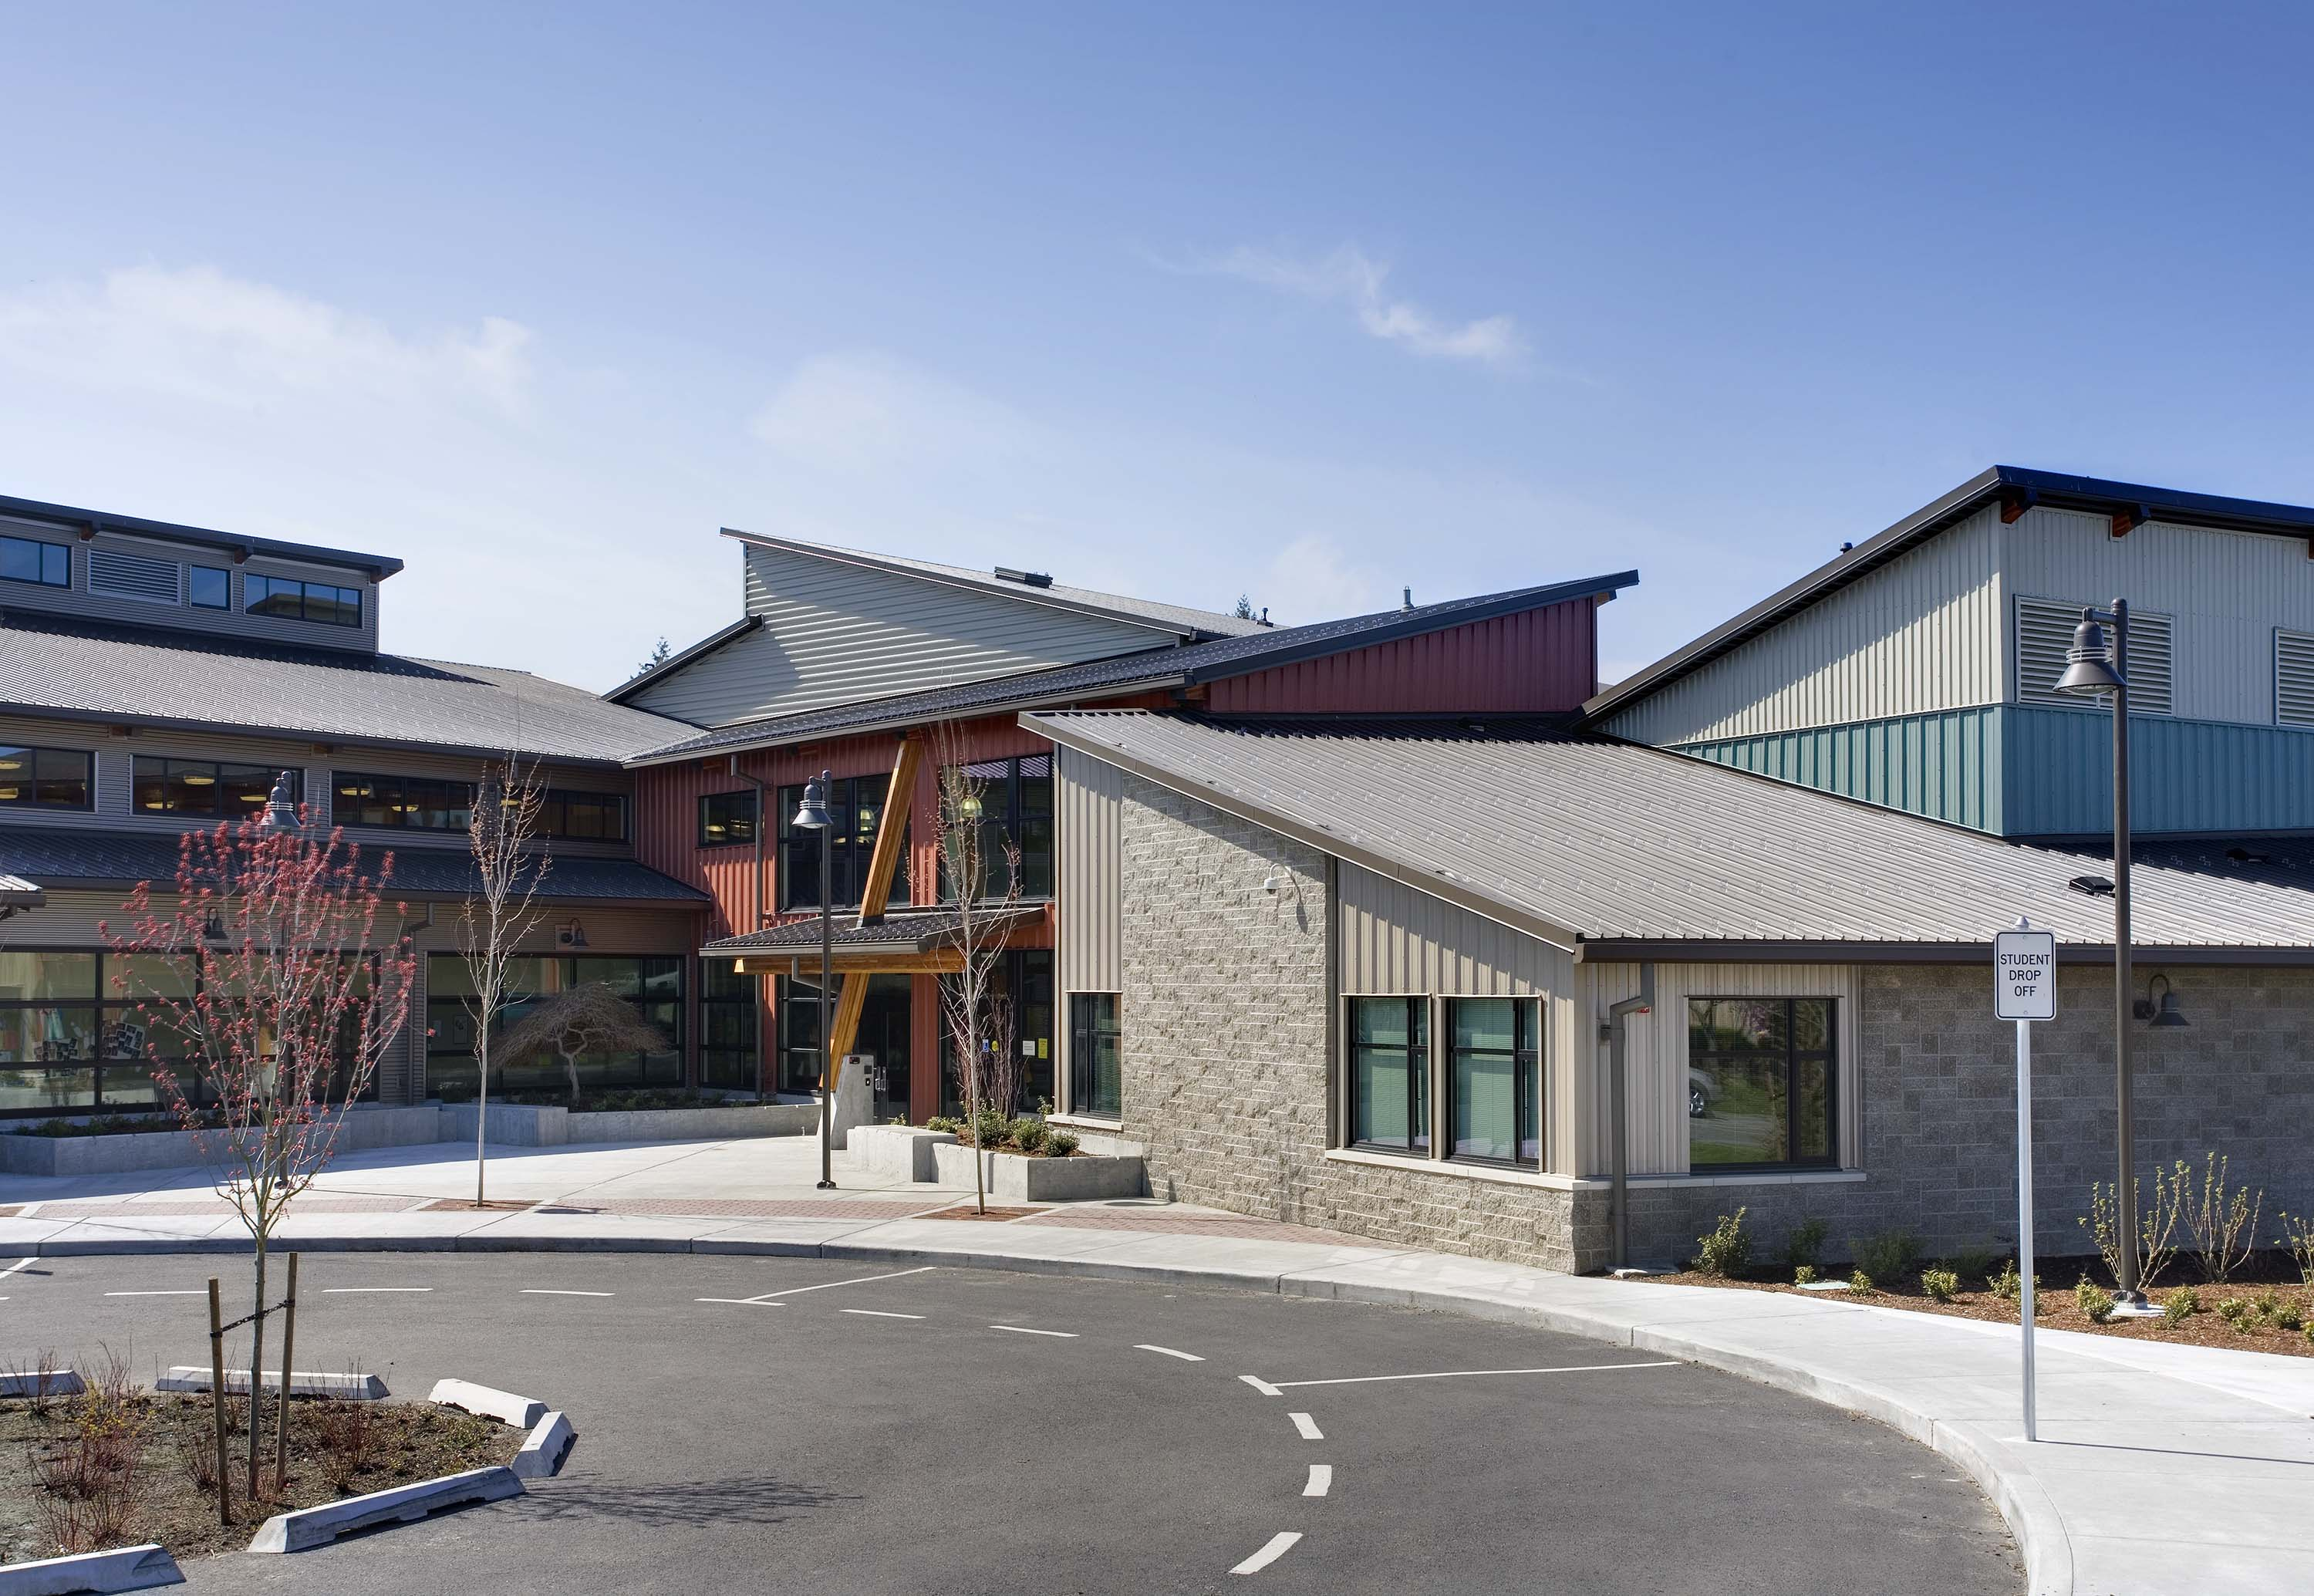 Exterior photo of the main entry and bus loop.